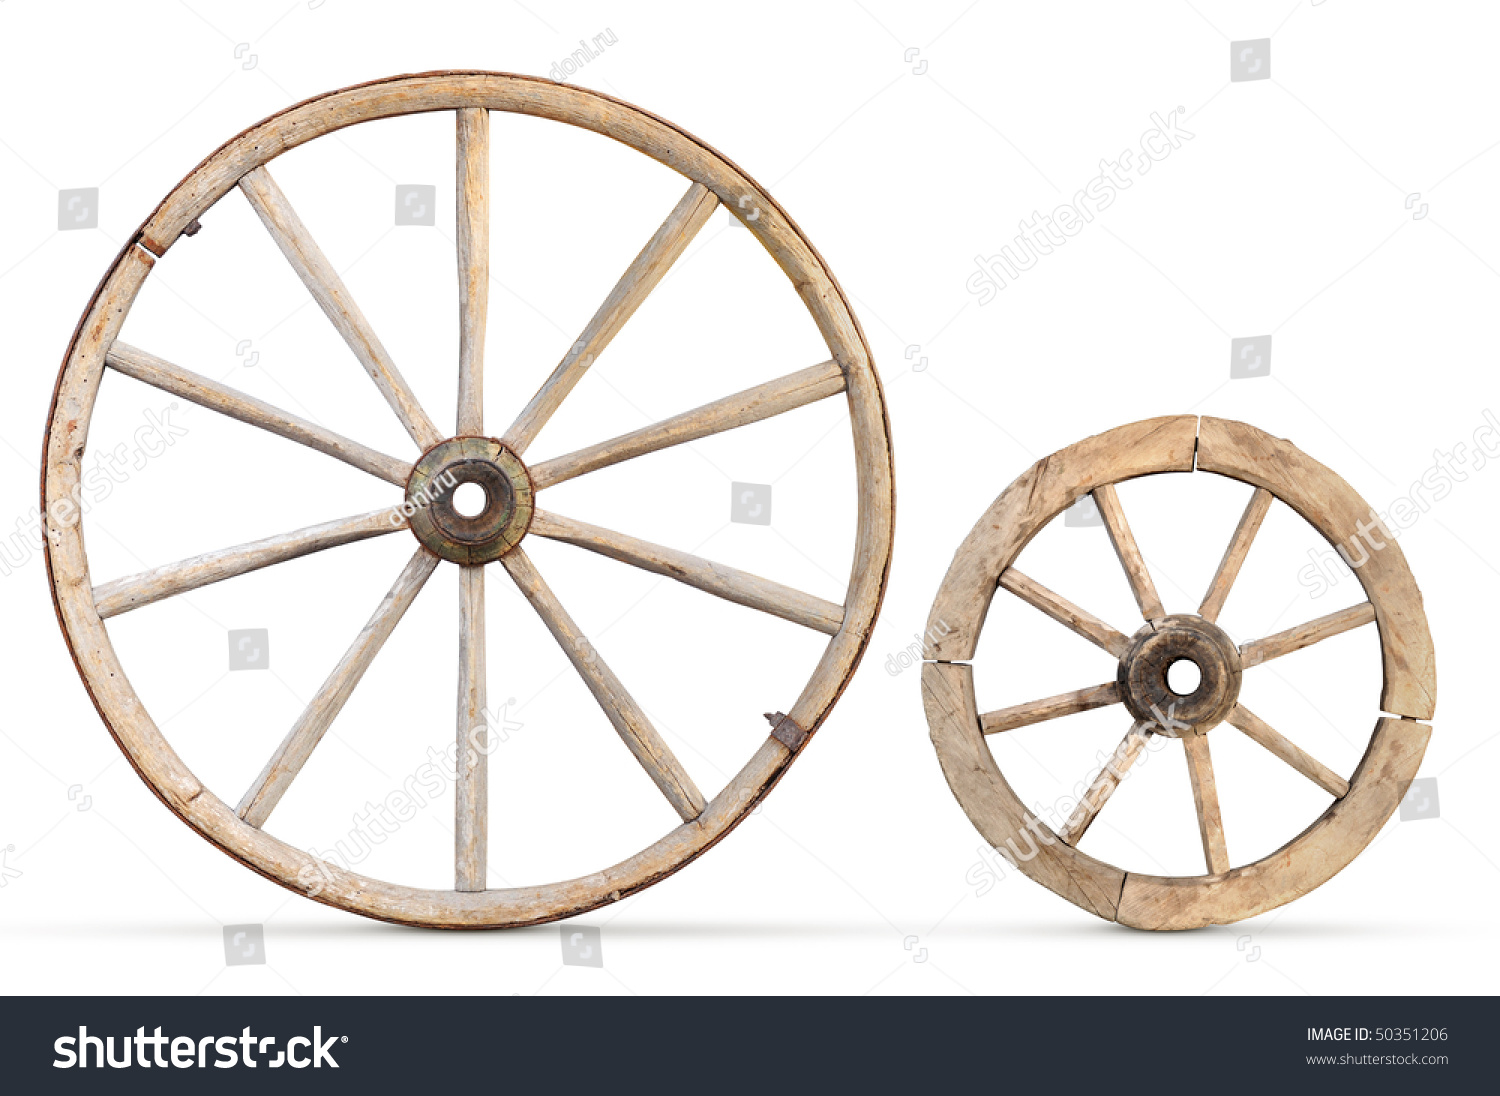 Two Antique Wood Wheels Stock Photo 50351206 Shutterstock